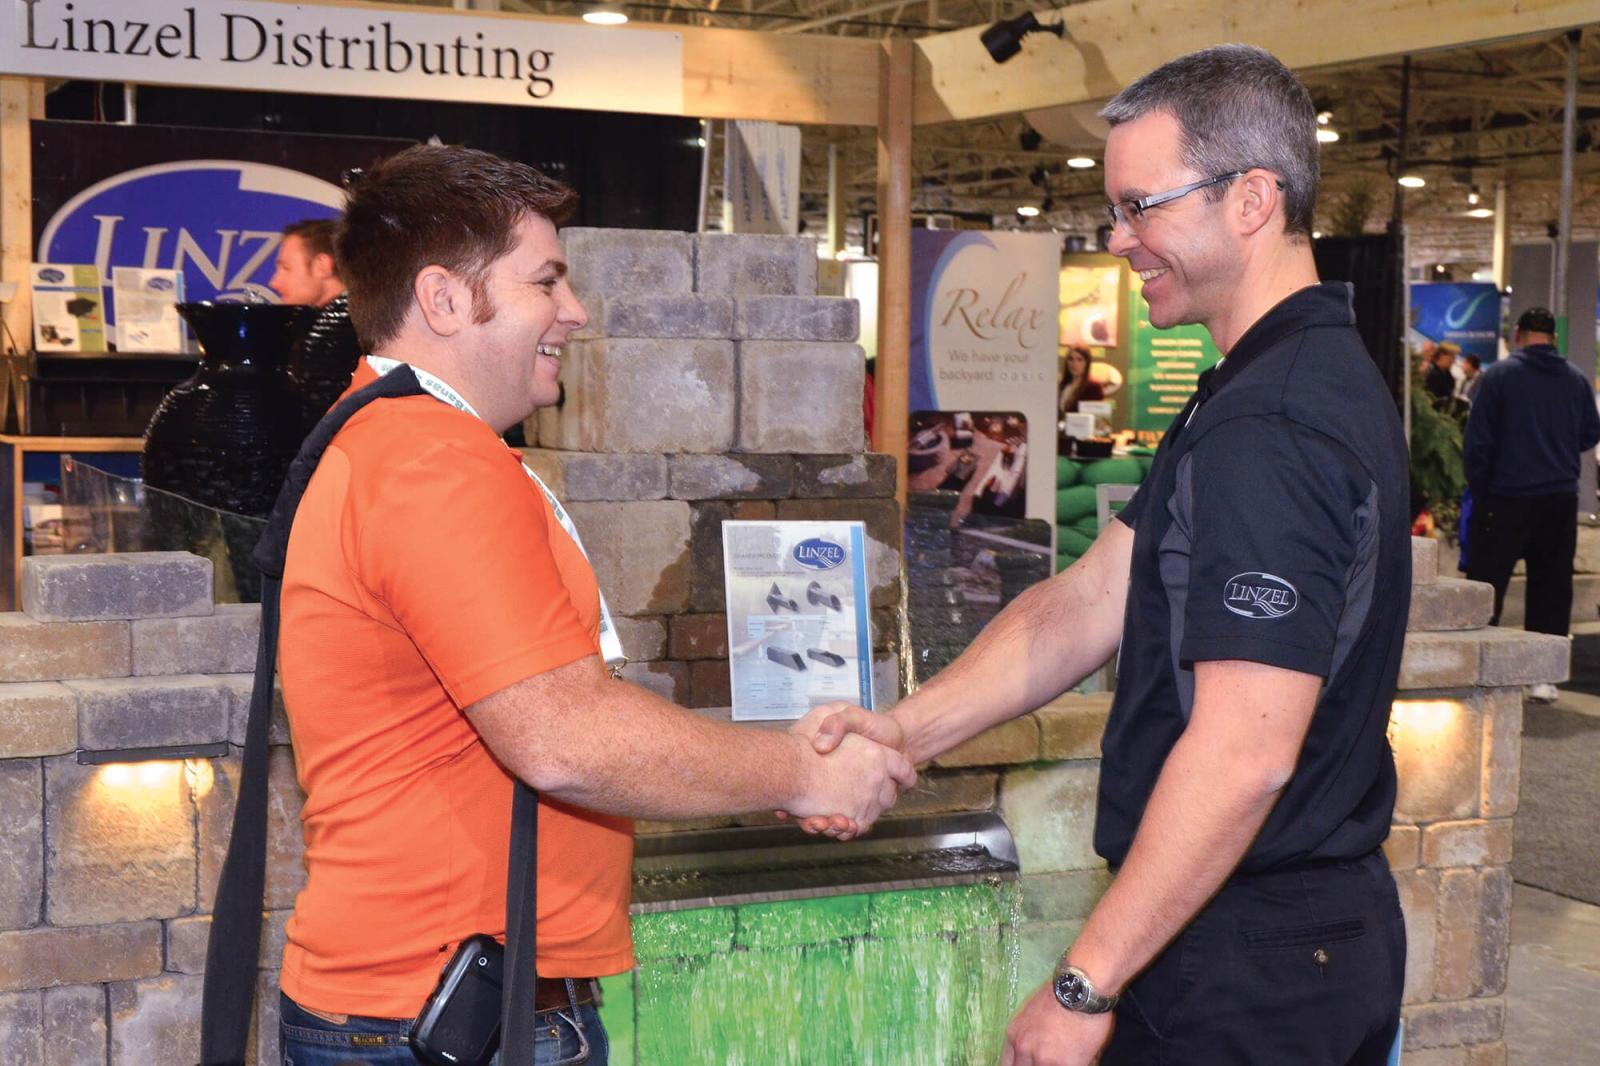 Lots of handshakes could be seen at this year's Congress. Both attendees and exhibitors reported a good business atmosphere.